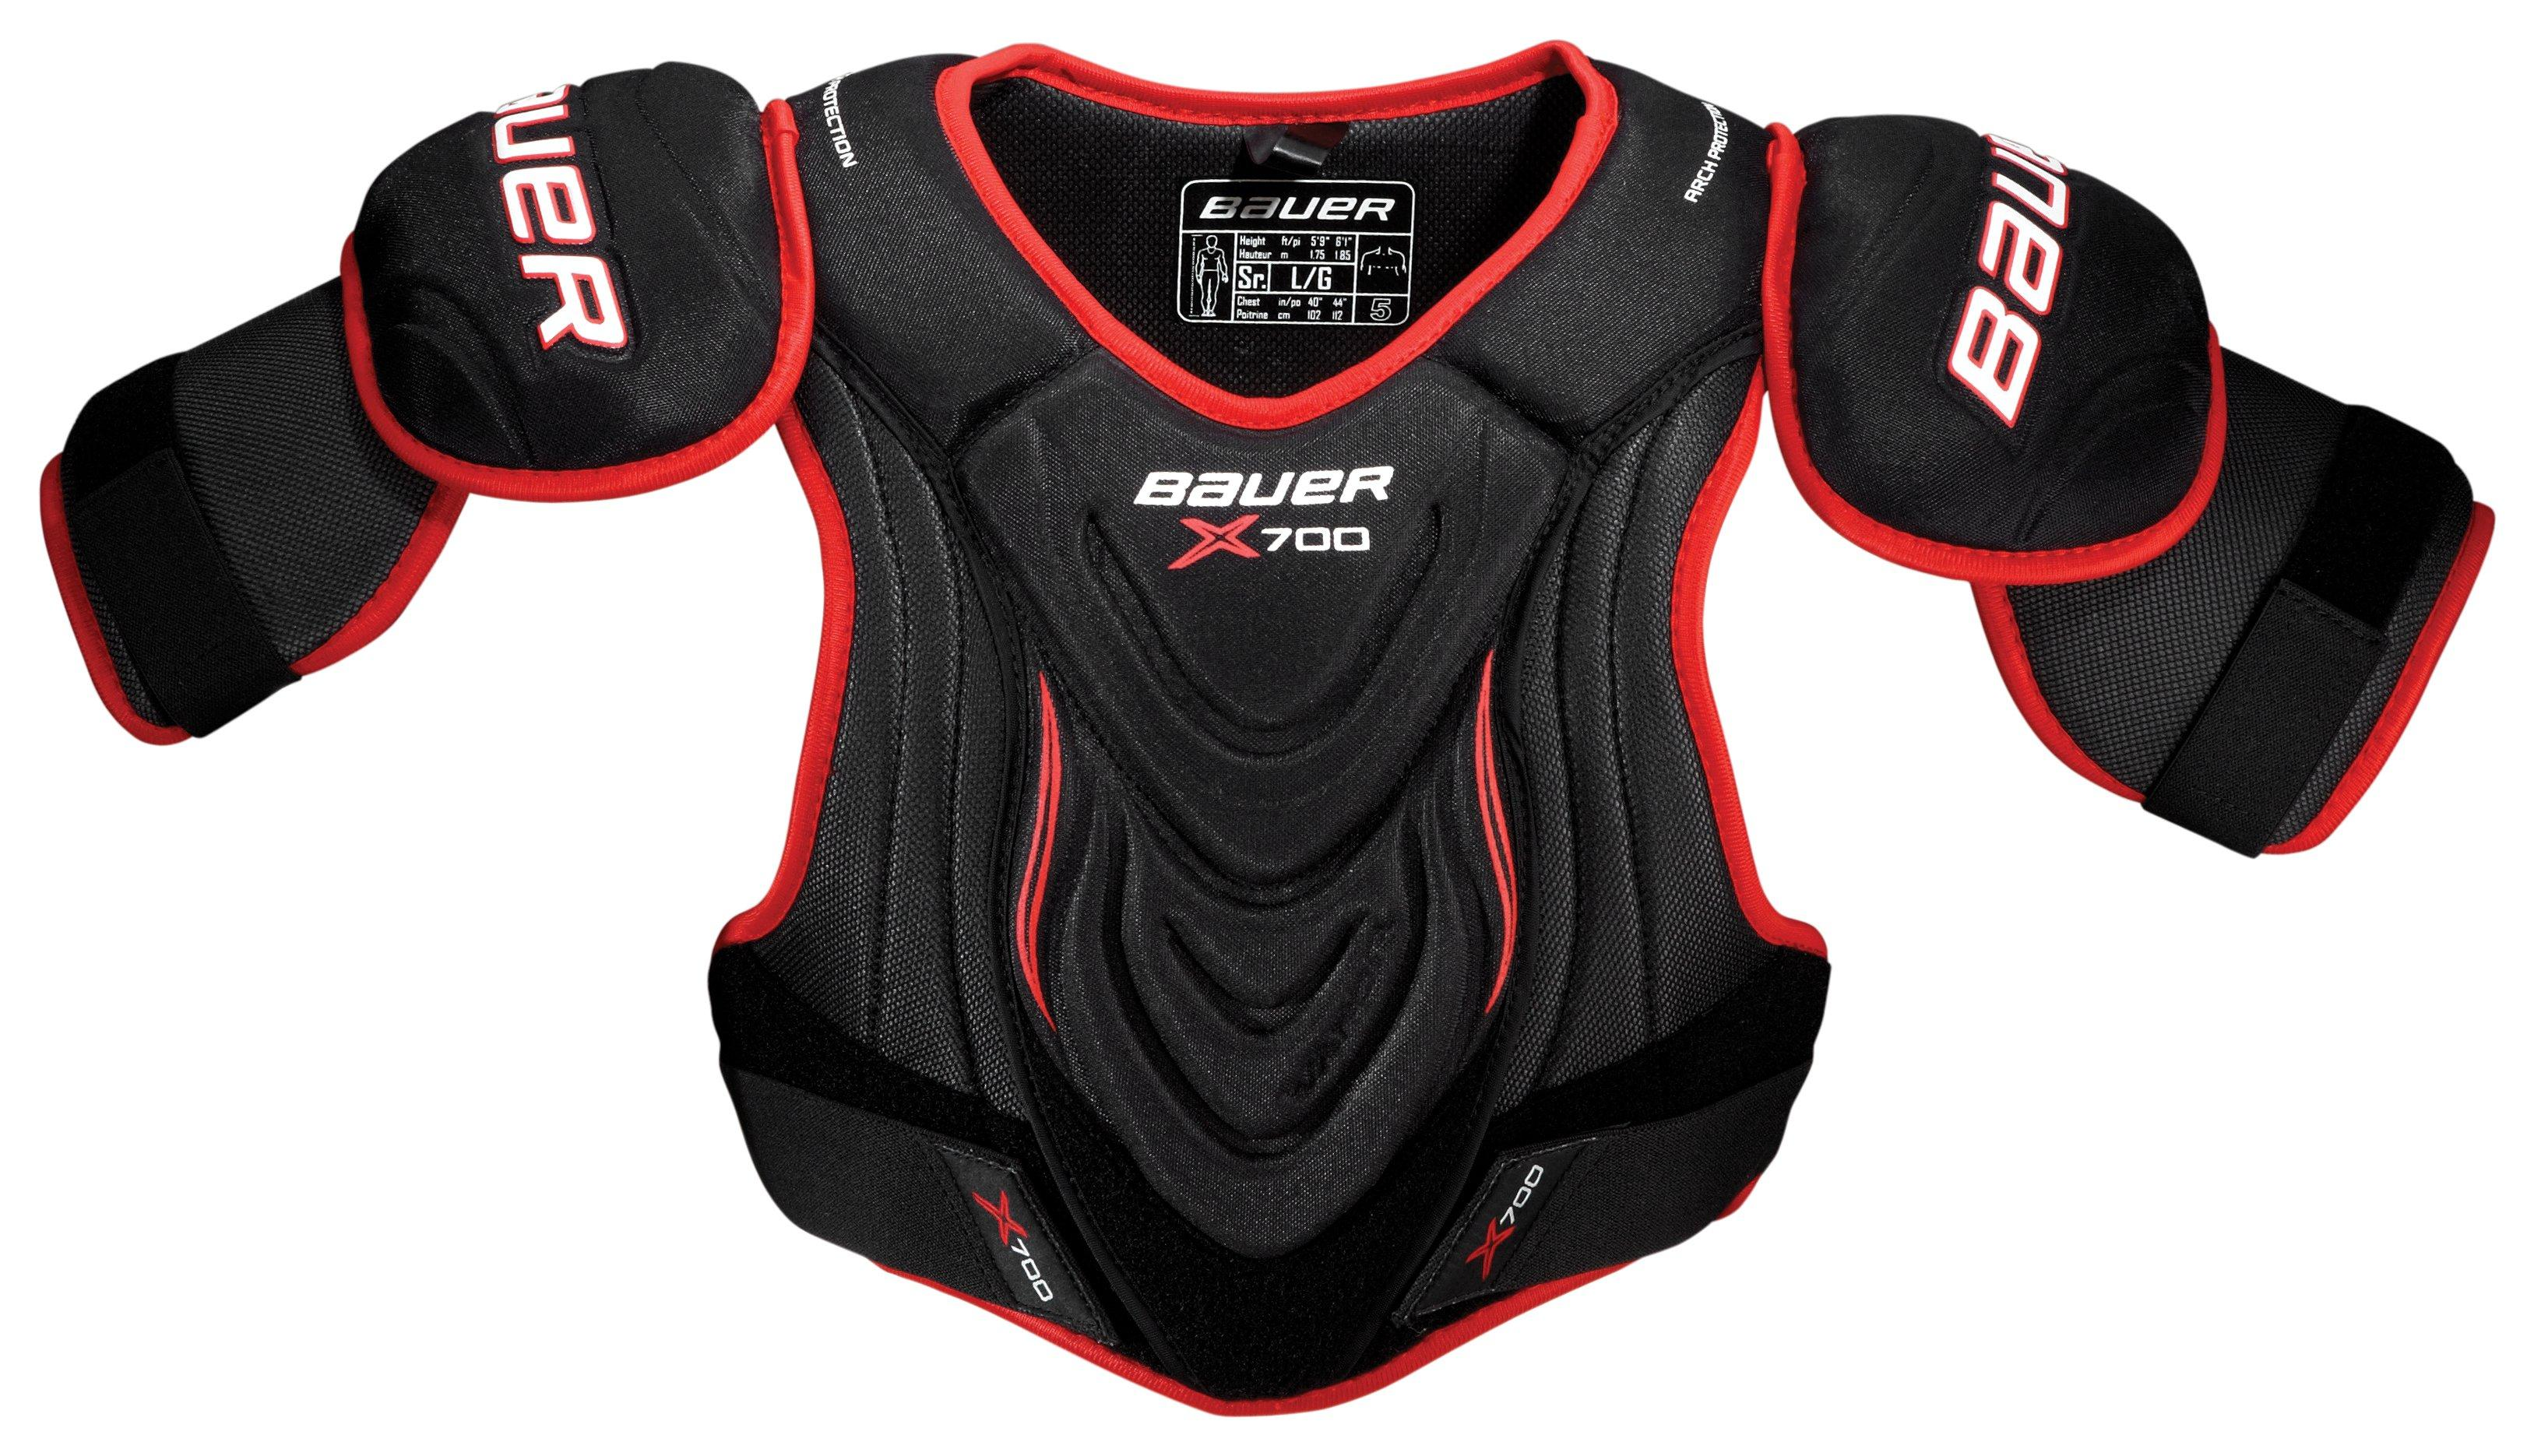 Vapor X700 Shoulder Pad Senior S16,,moyen